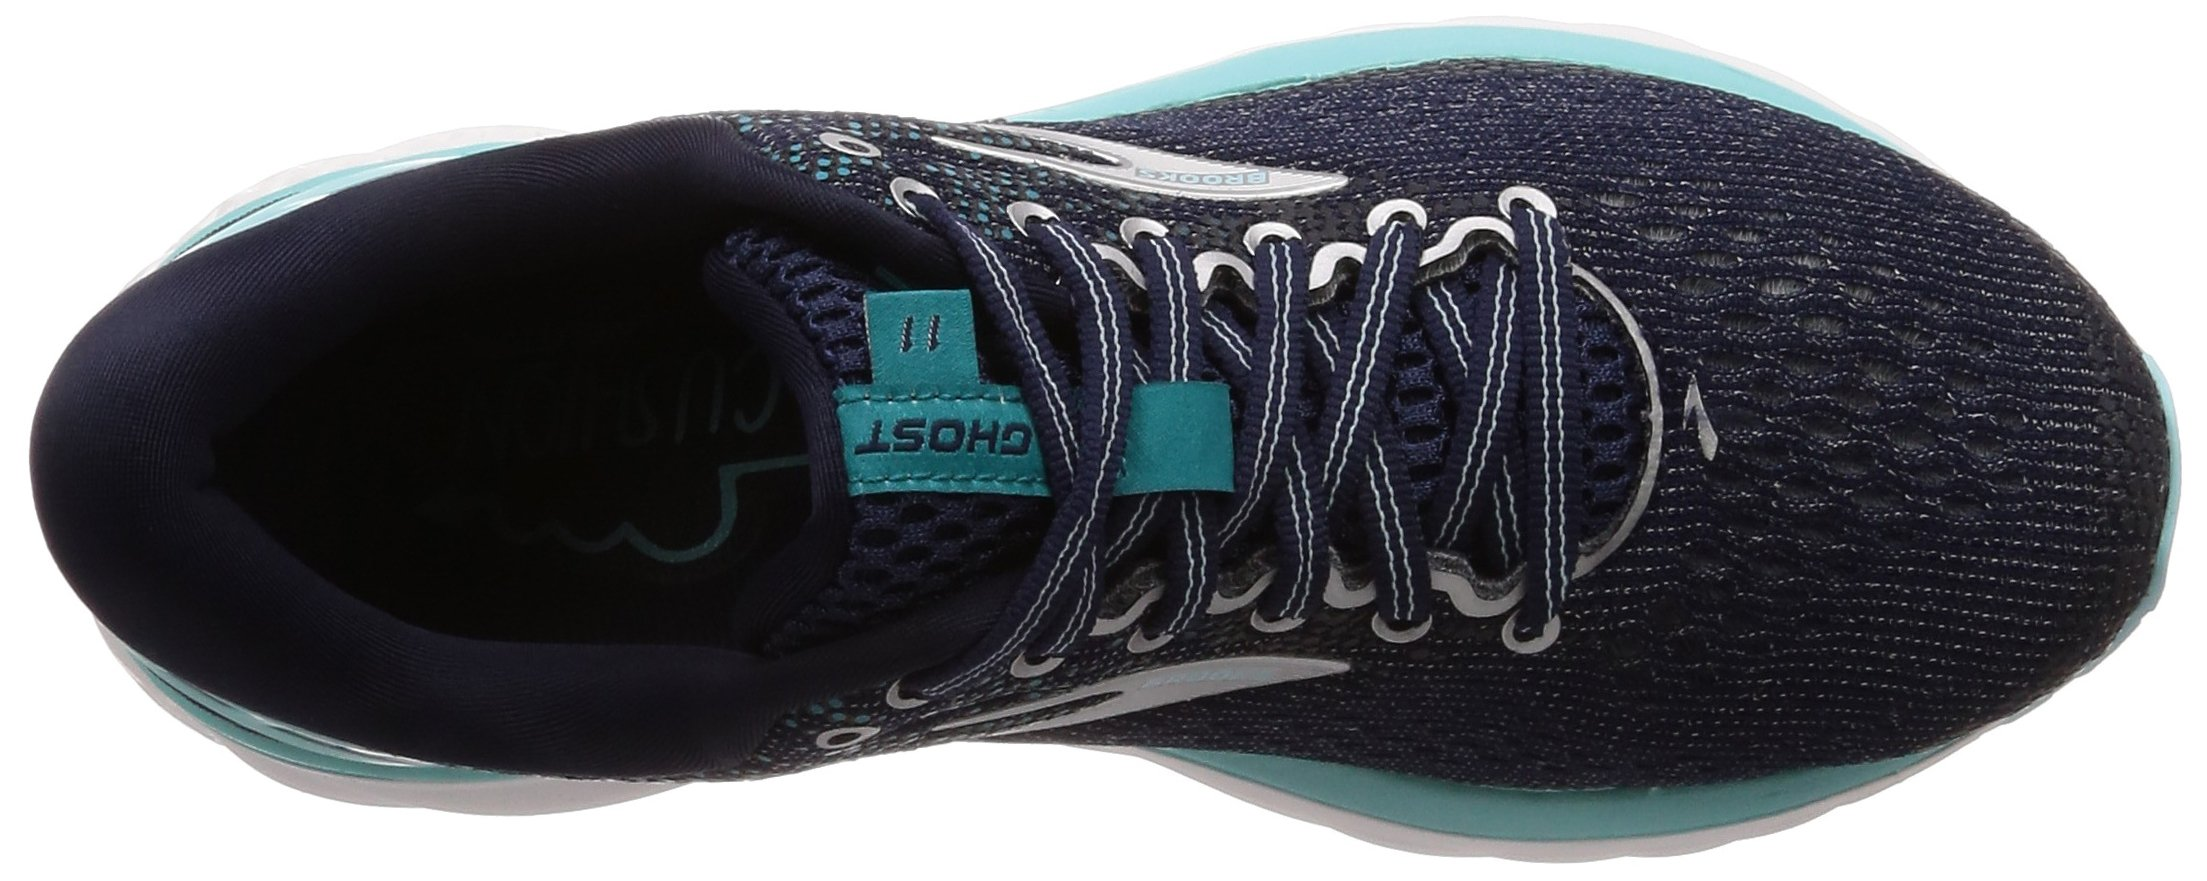 Brooks Womens Ghost 11 Running Shoe - Navy/Grey/Blue - D - 5.5 by Brooks (Image #7)